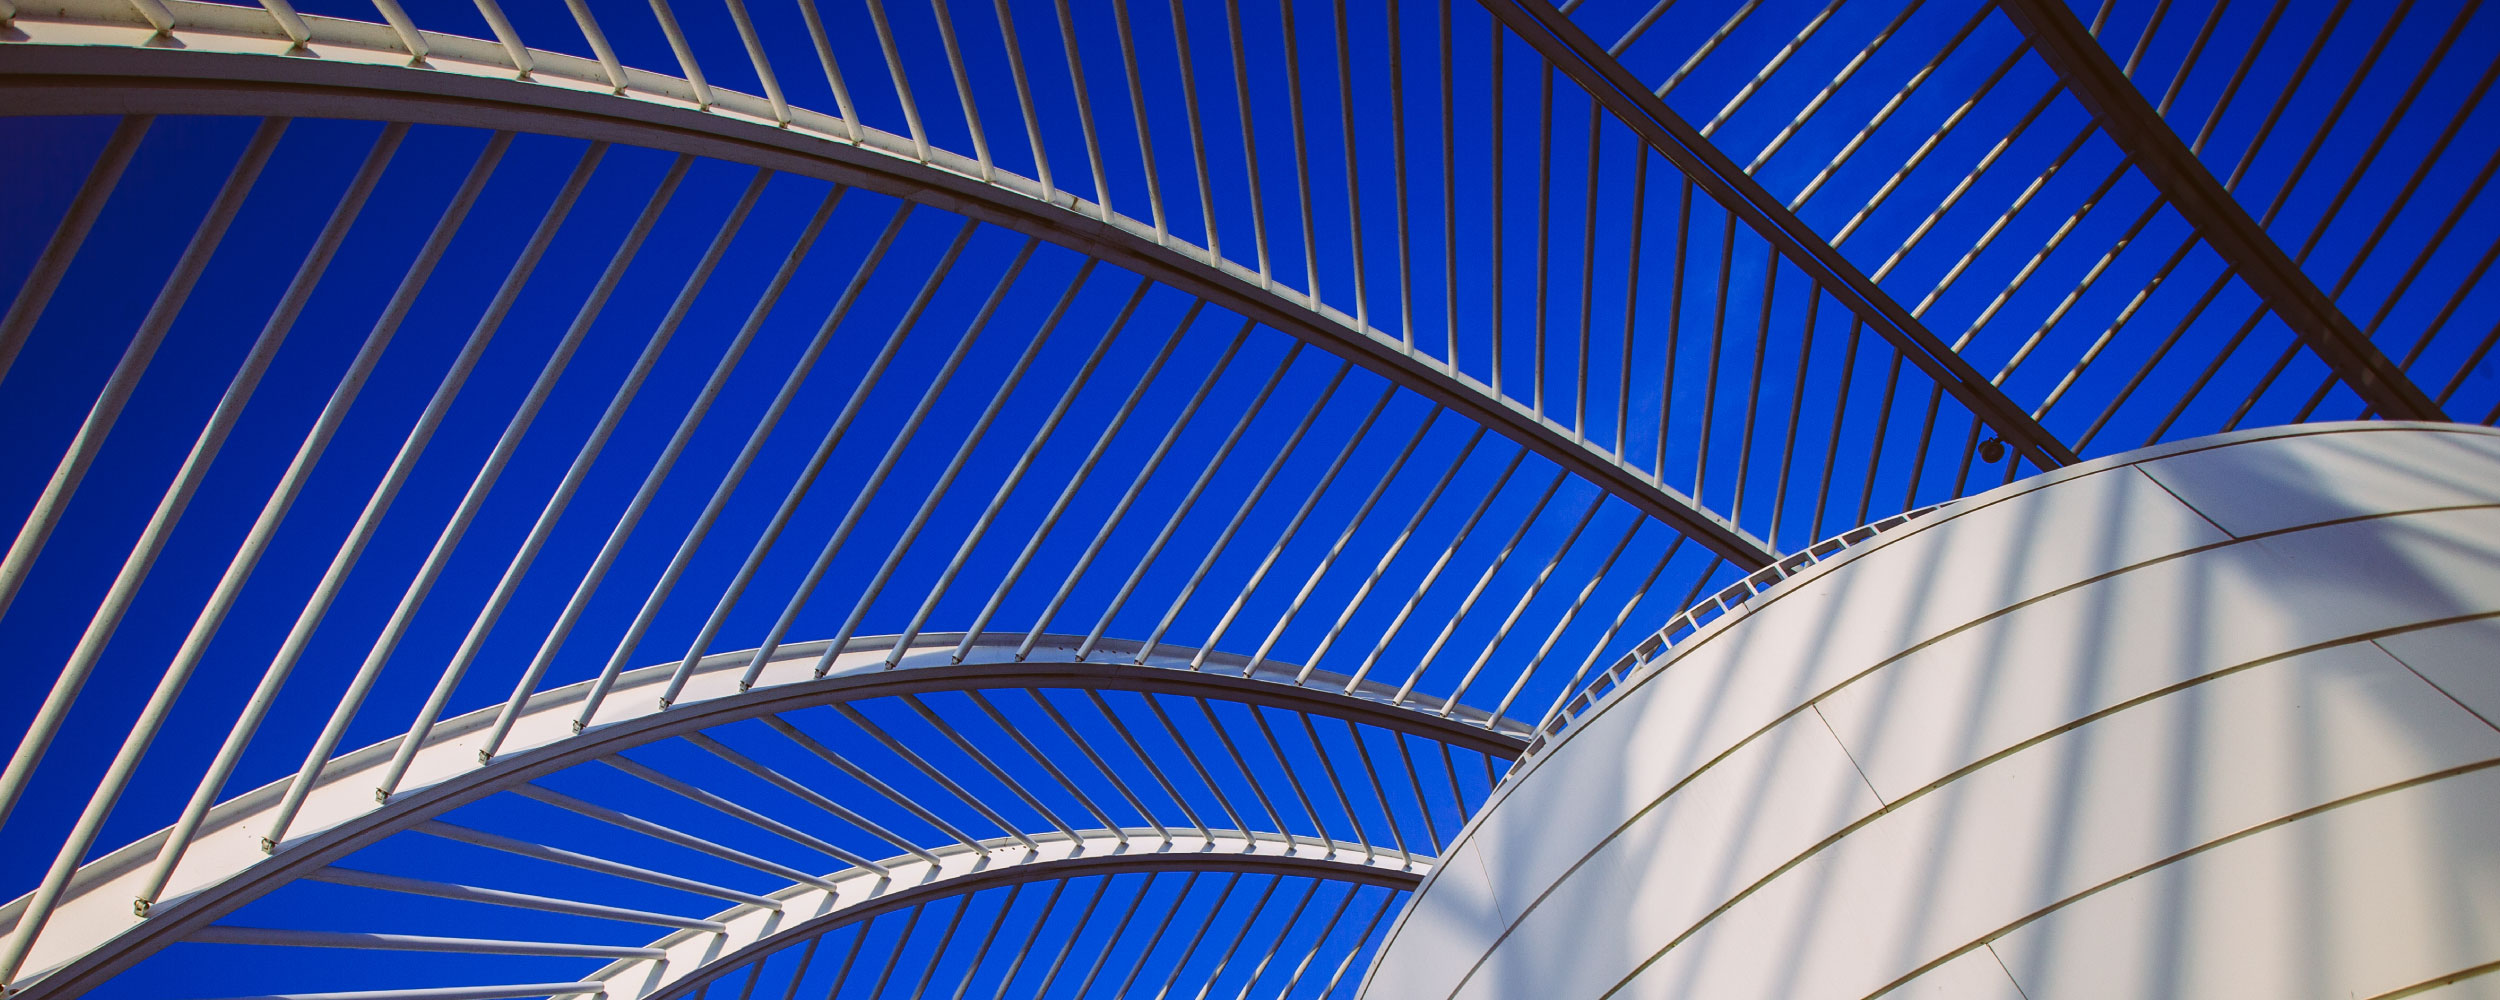 Photo of rafters at the science building at Florida Polytechnic